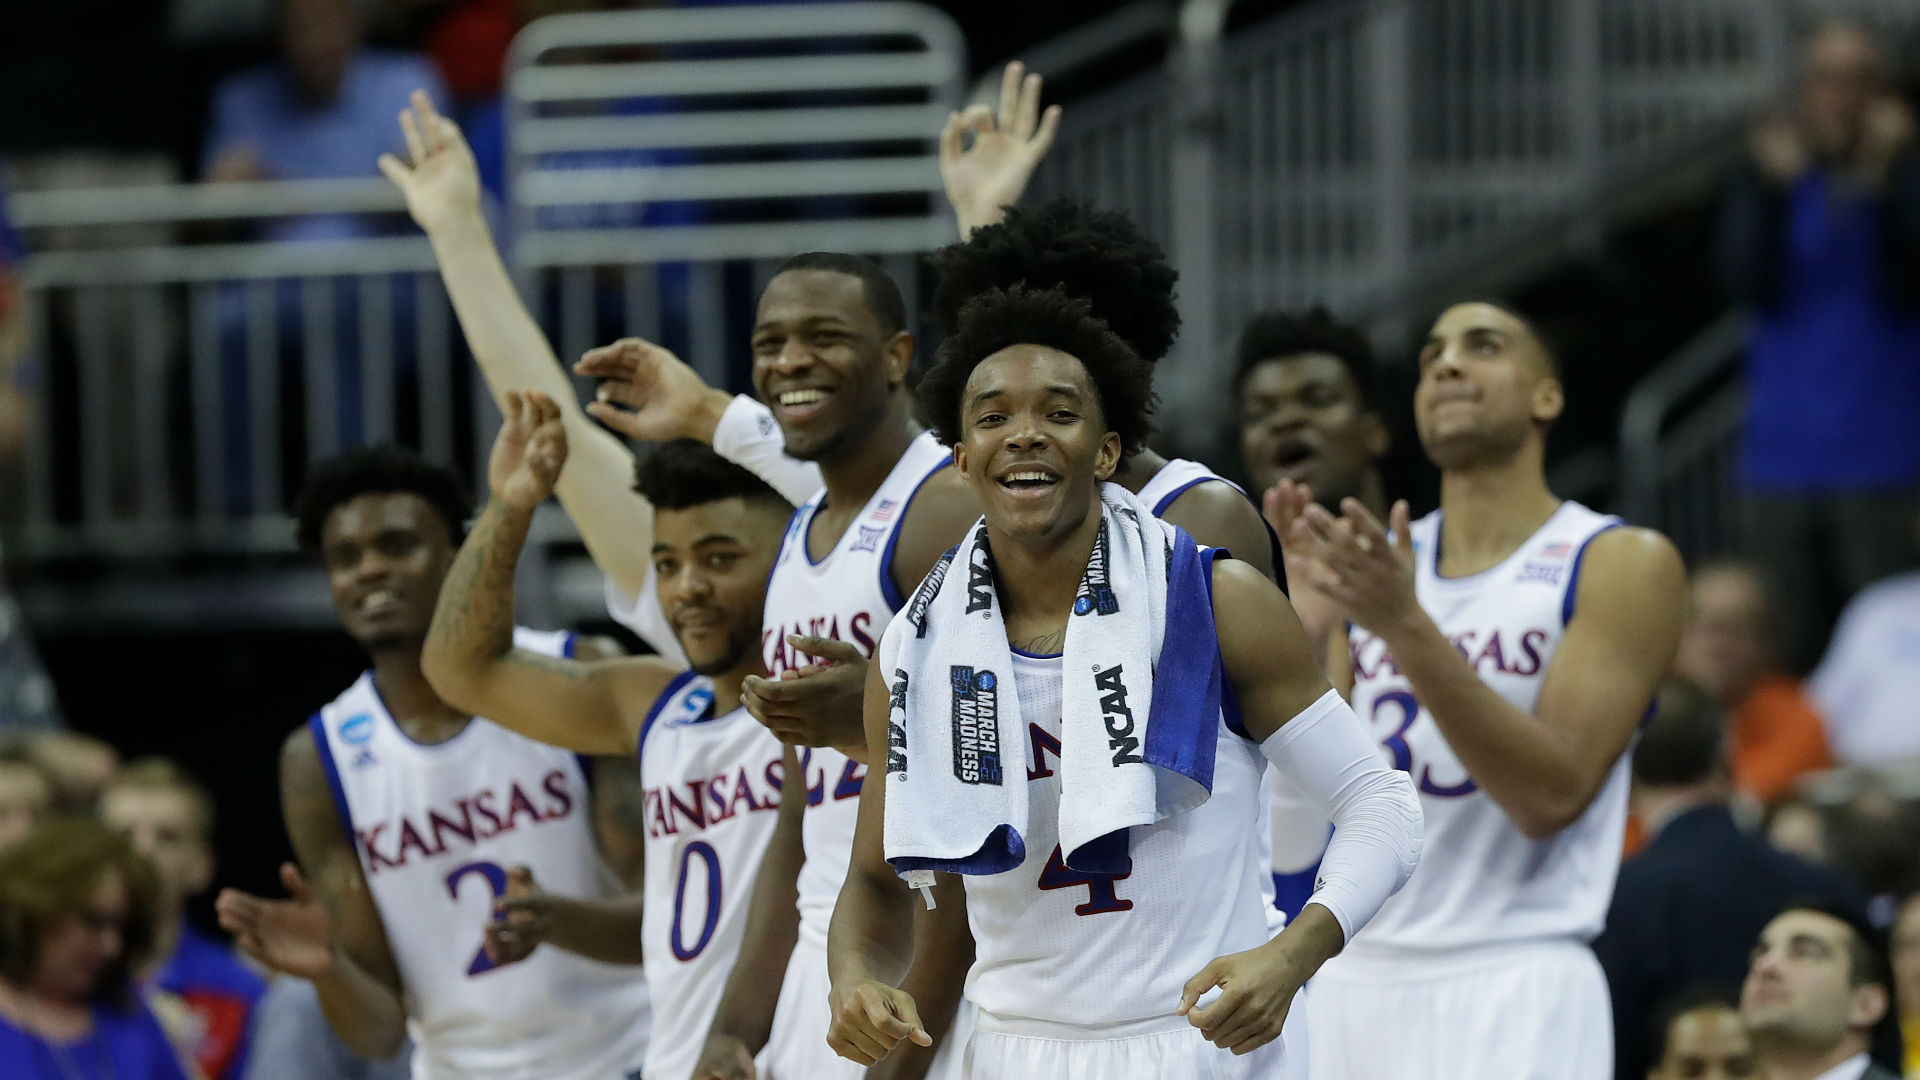 OR clocks Kansas to advance to first Final Four since 1939